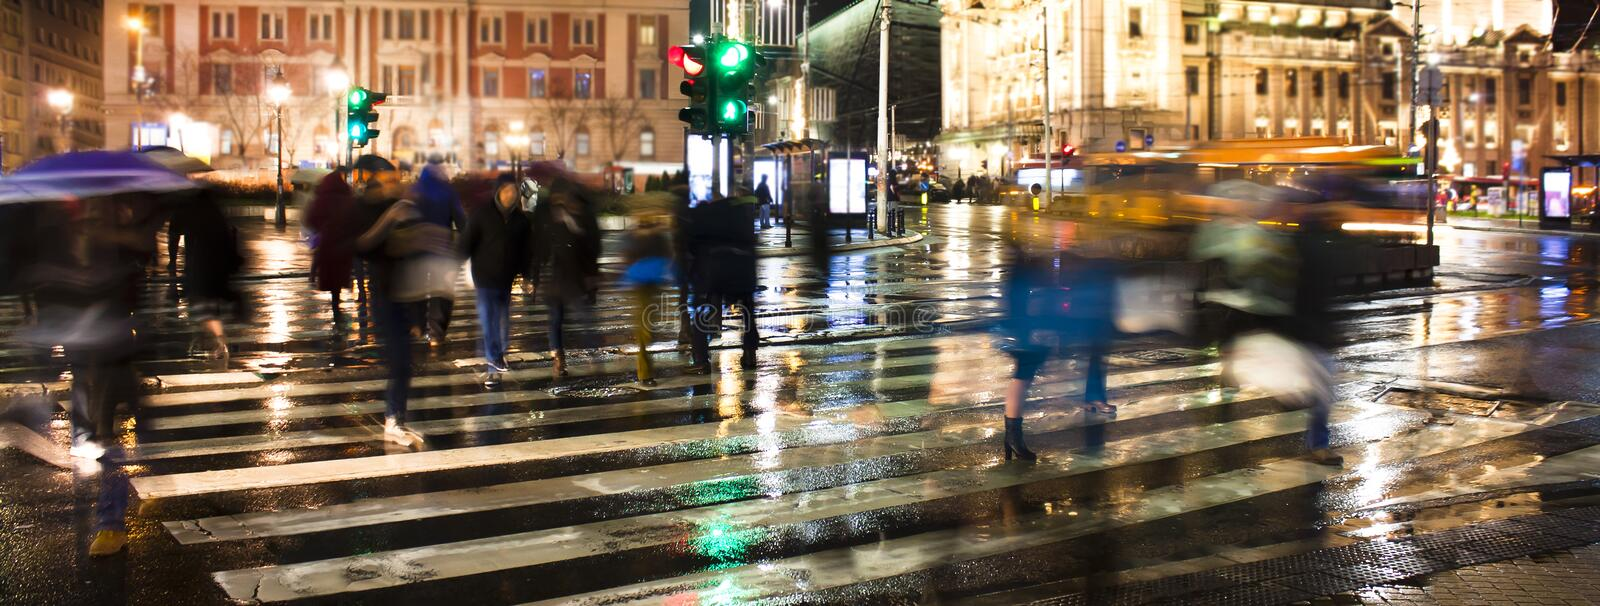 Blurry people crossing the city street in rainy night royalty free stock image